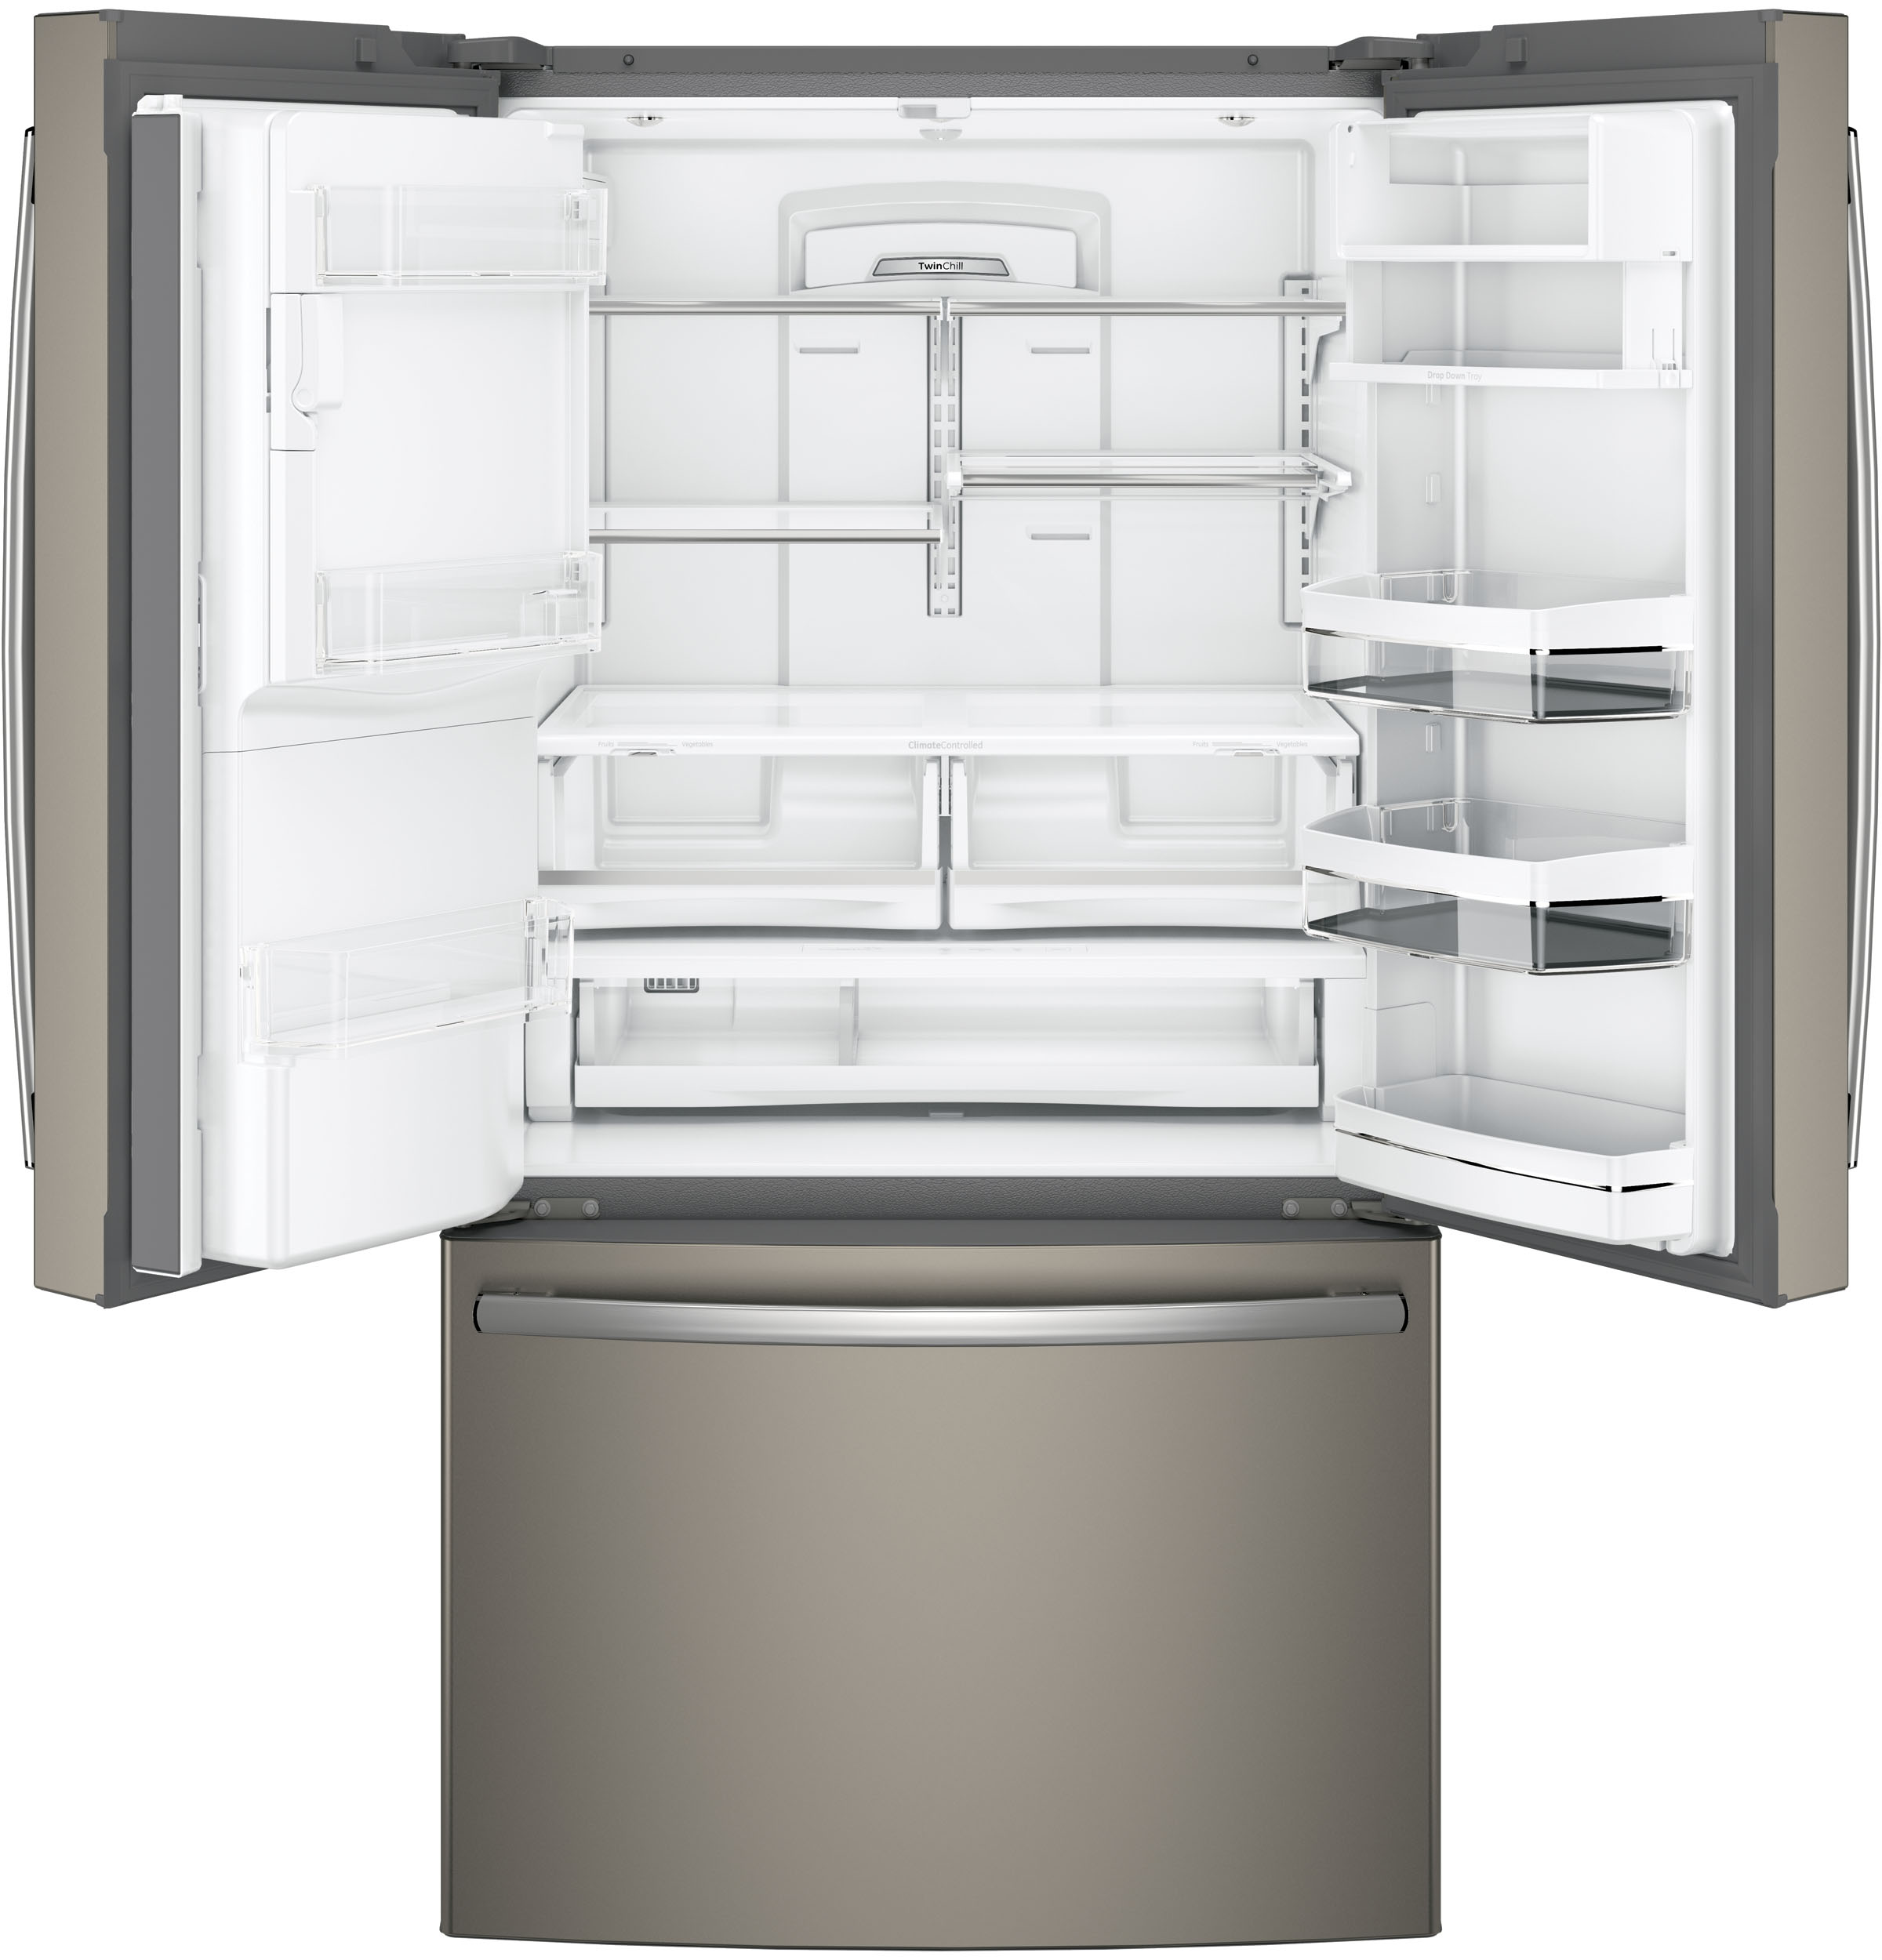 Model: PFE28KMKES | GE Profile GE Profile™ Series ENERGY STAR® 27.8 Cu. Ft. French-Door Refrigerator with Hands-Free AutoFill